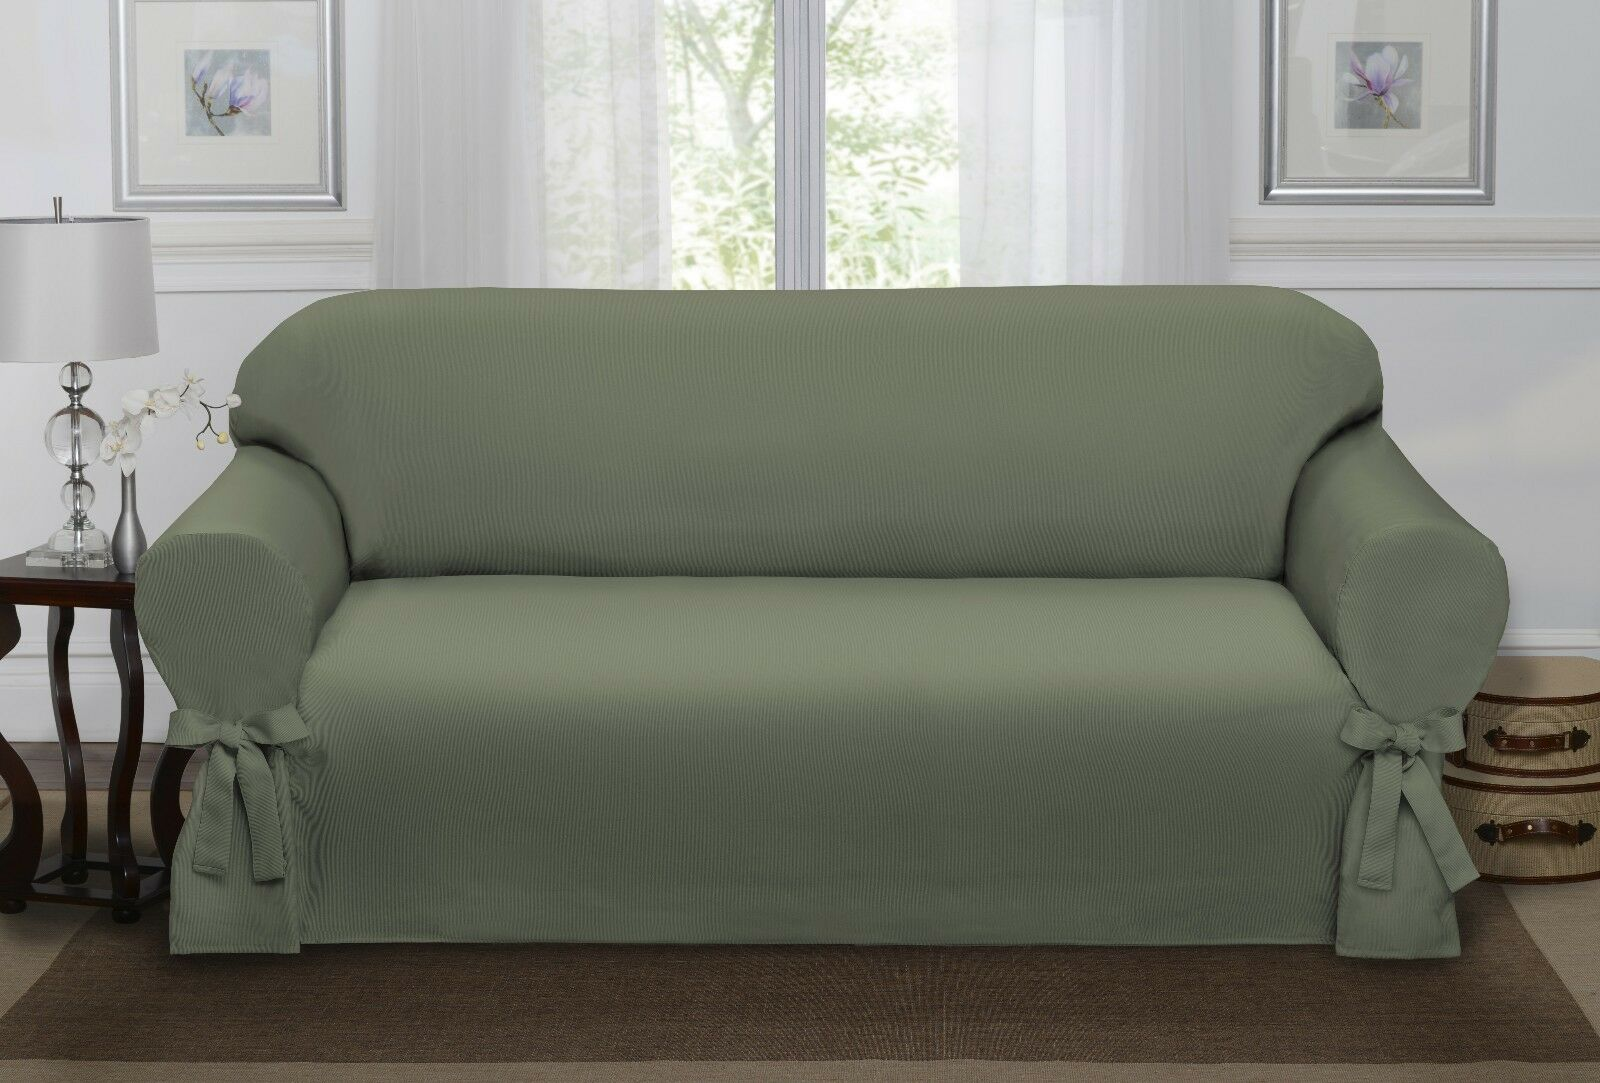 SAGE GREEN LODEN LUCERNE SOFA SLIPCOVER COUCH COVER SOFA CHAIR 4 COLORS  eBay